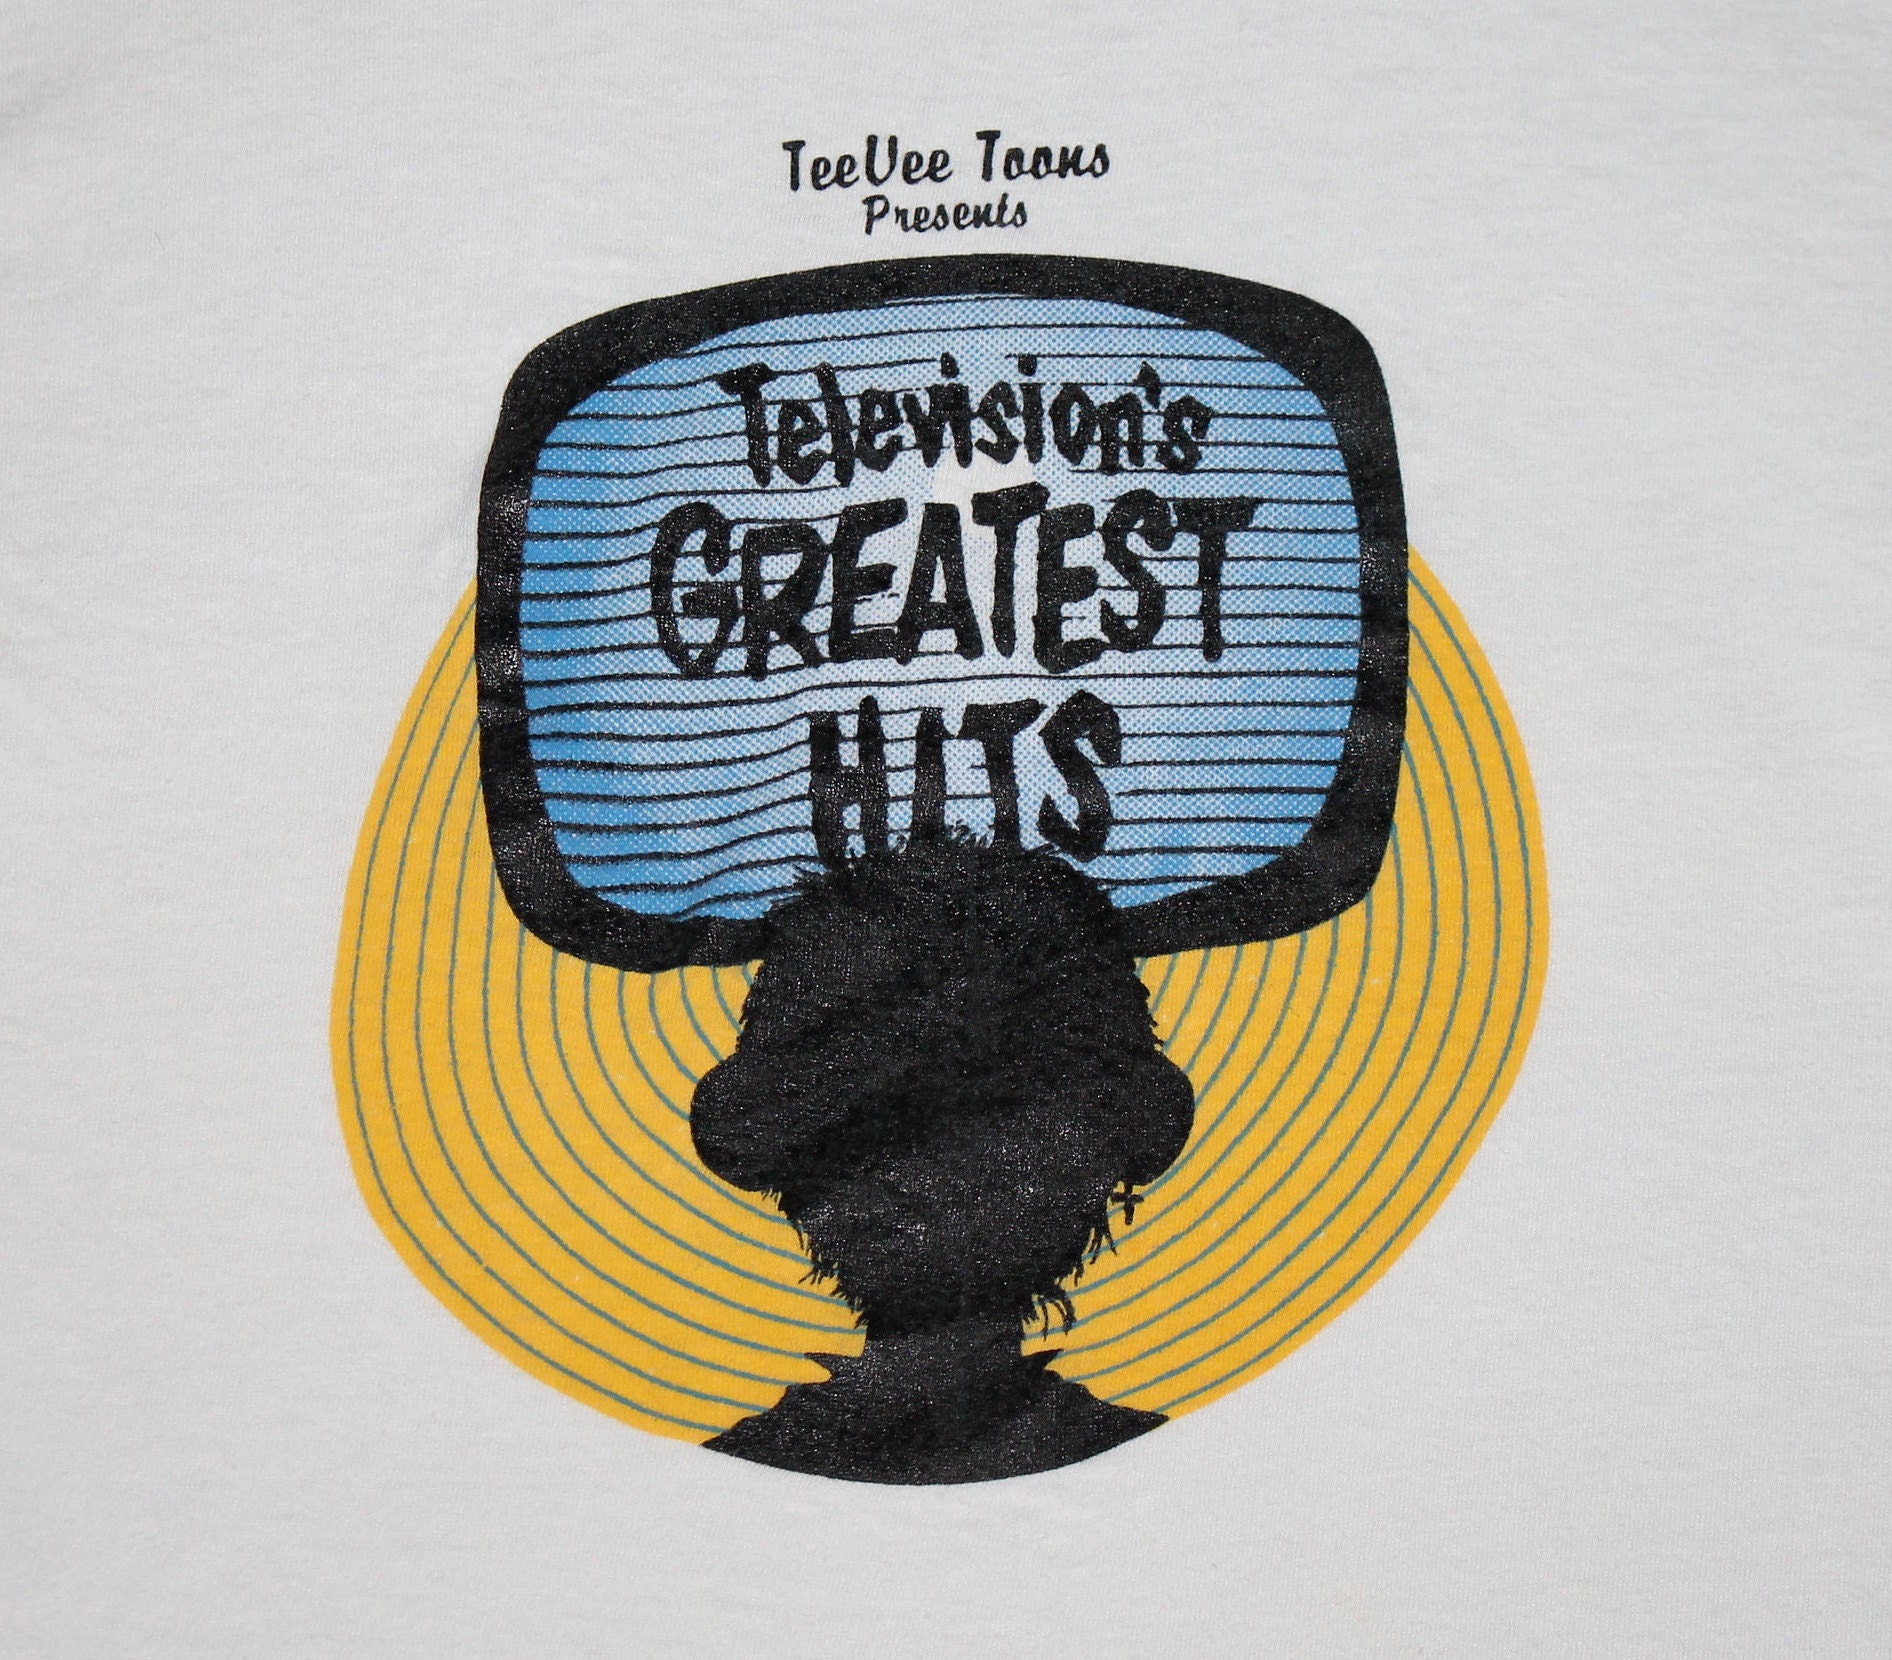 S * vtg 80s 1985 TeeVee Toons televisions greatest hits comp